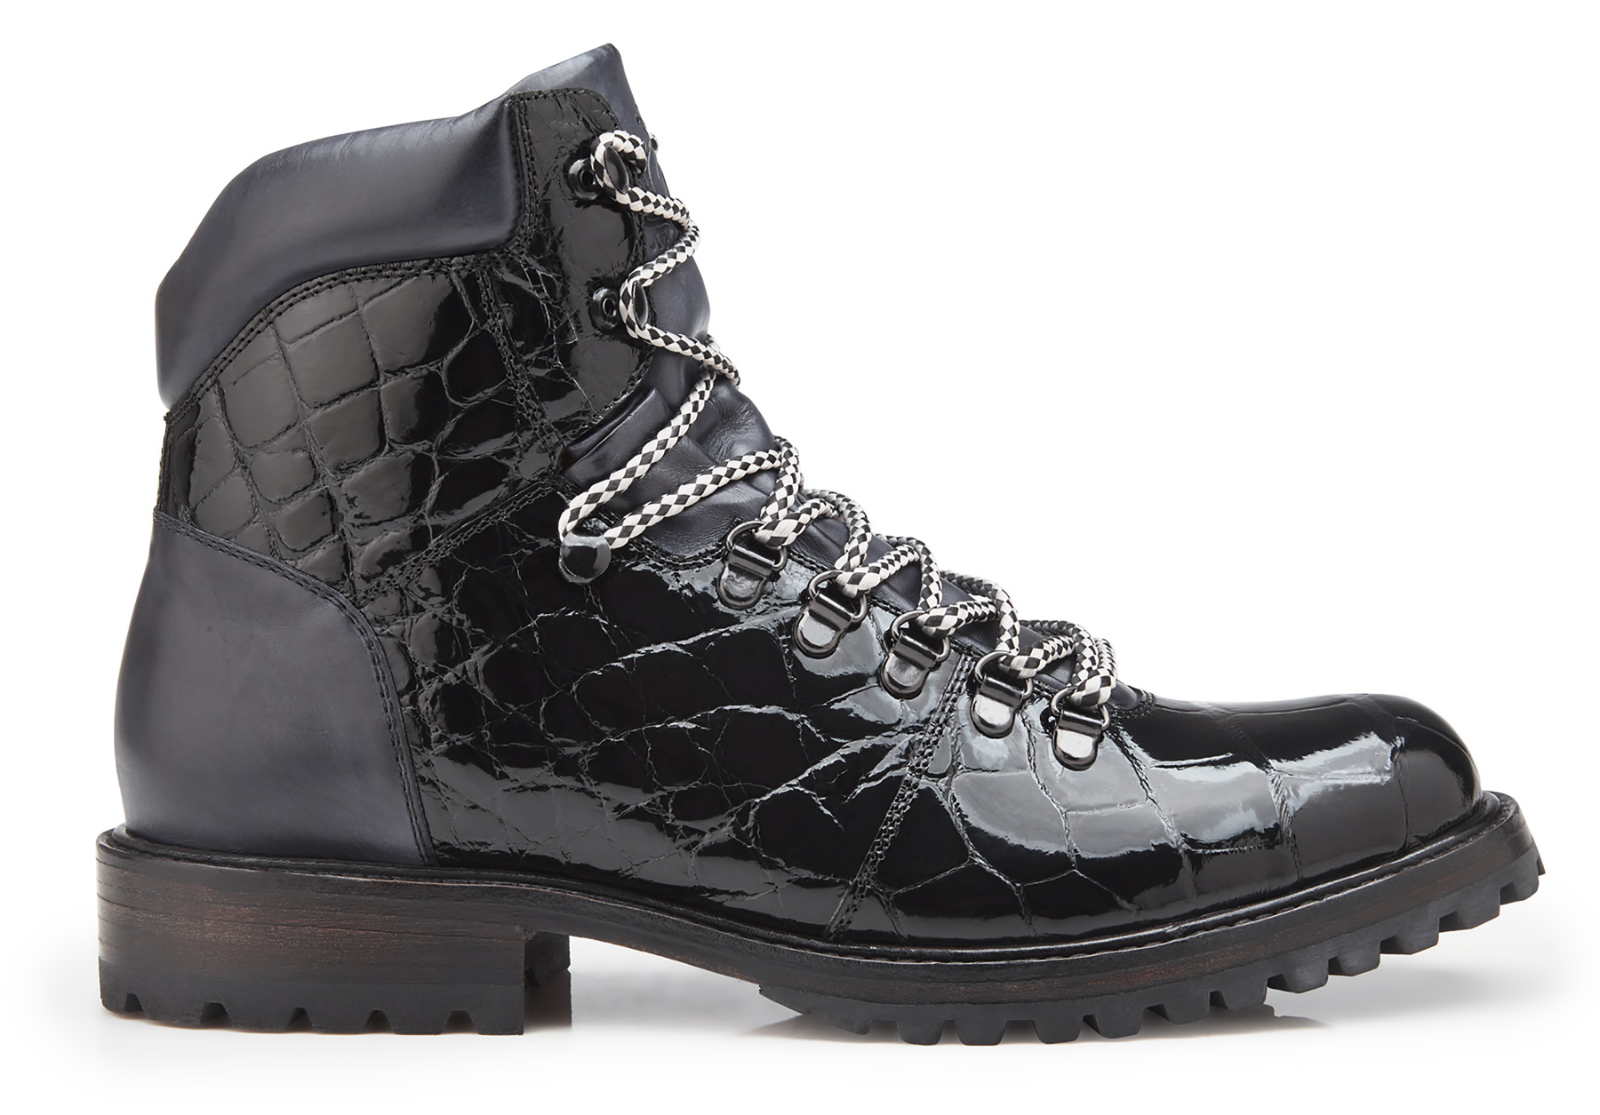 50 Similar Belvedere Damian Alligator Items Genuine And Boot ZXuTkwOPi